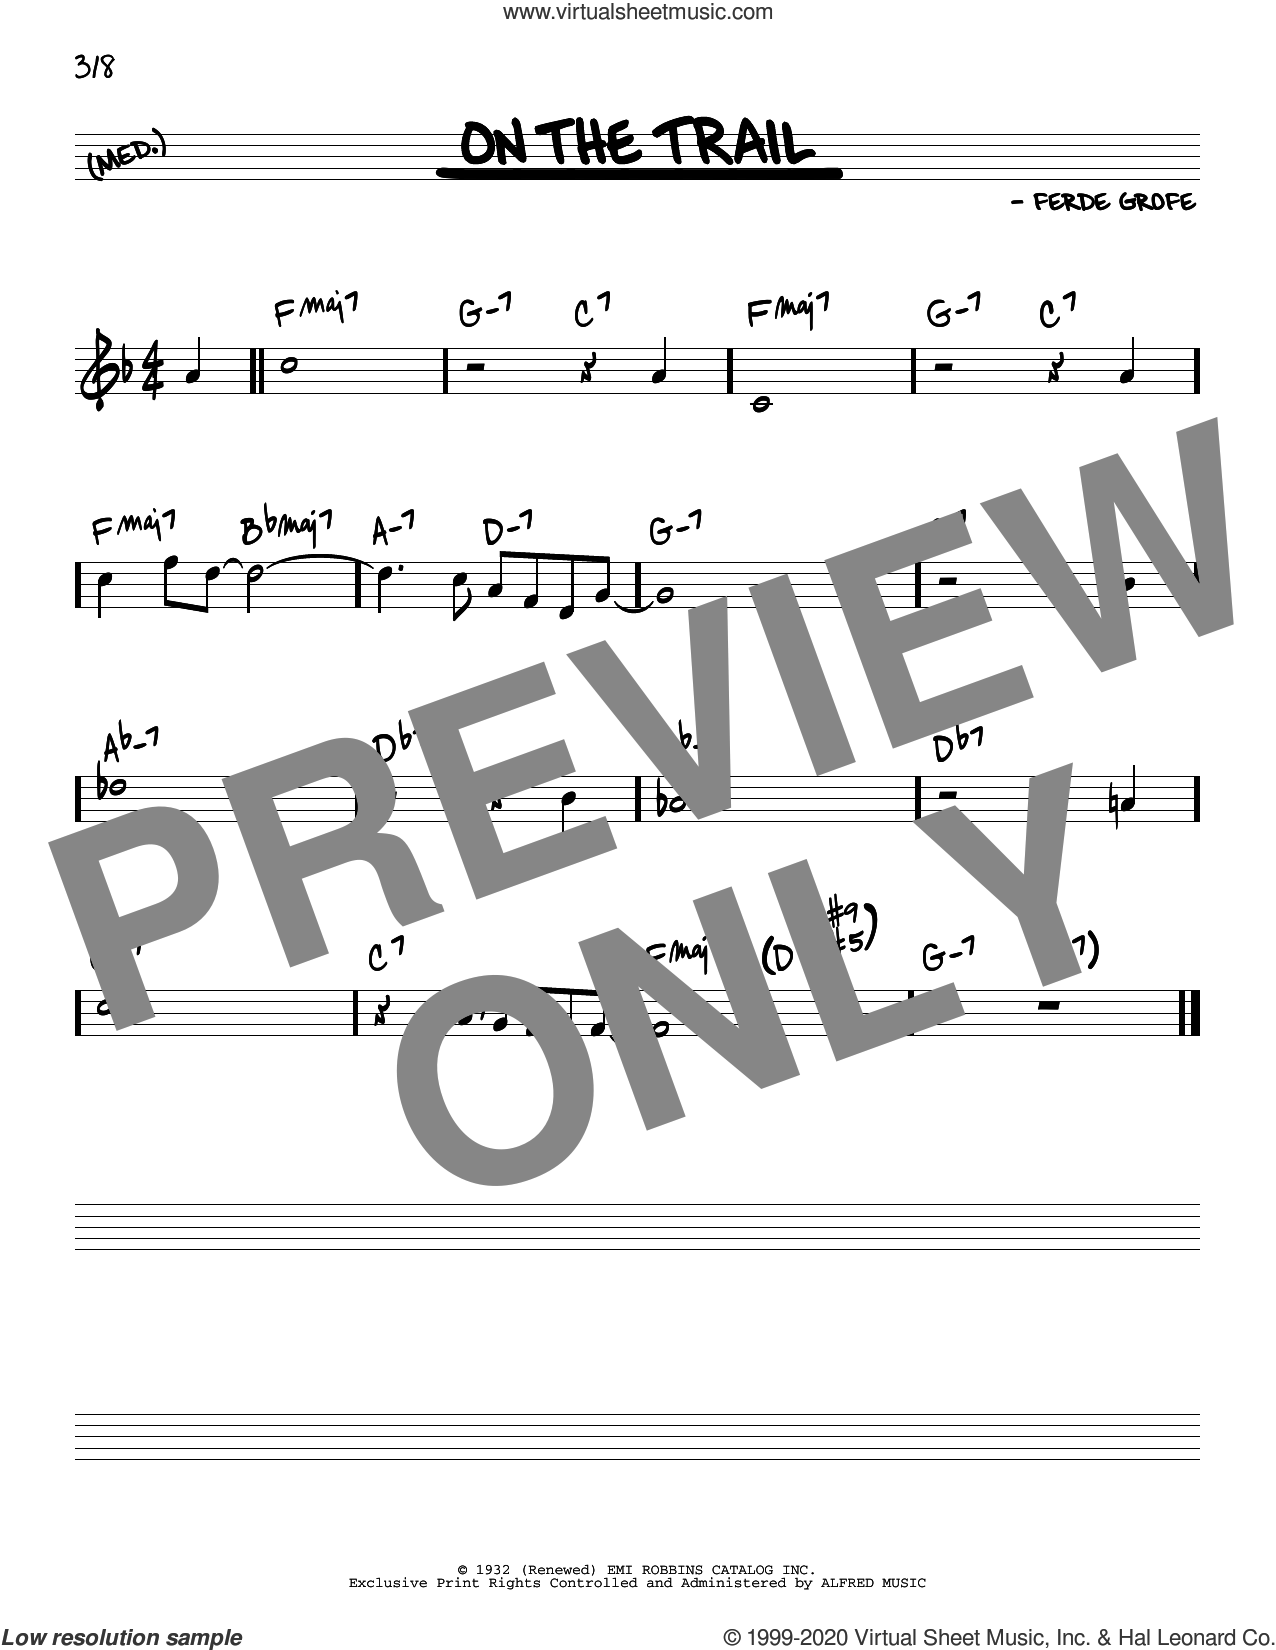 On The Trail sheet music for voice and other instruments (real book) by Ferde Grofe, intermediate skill level